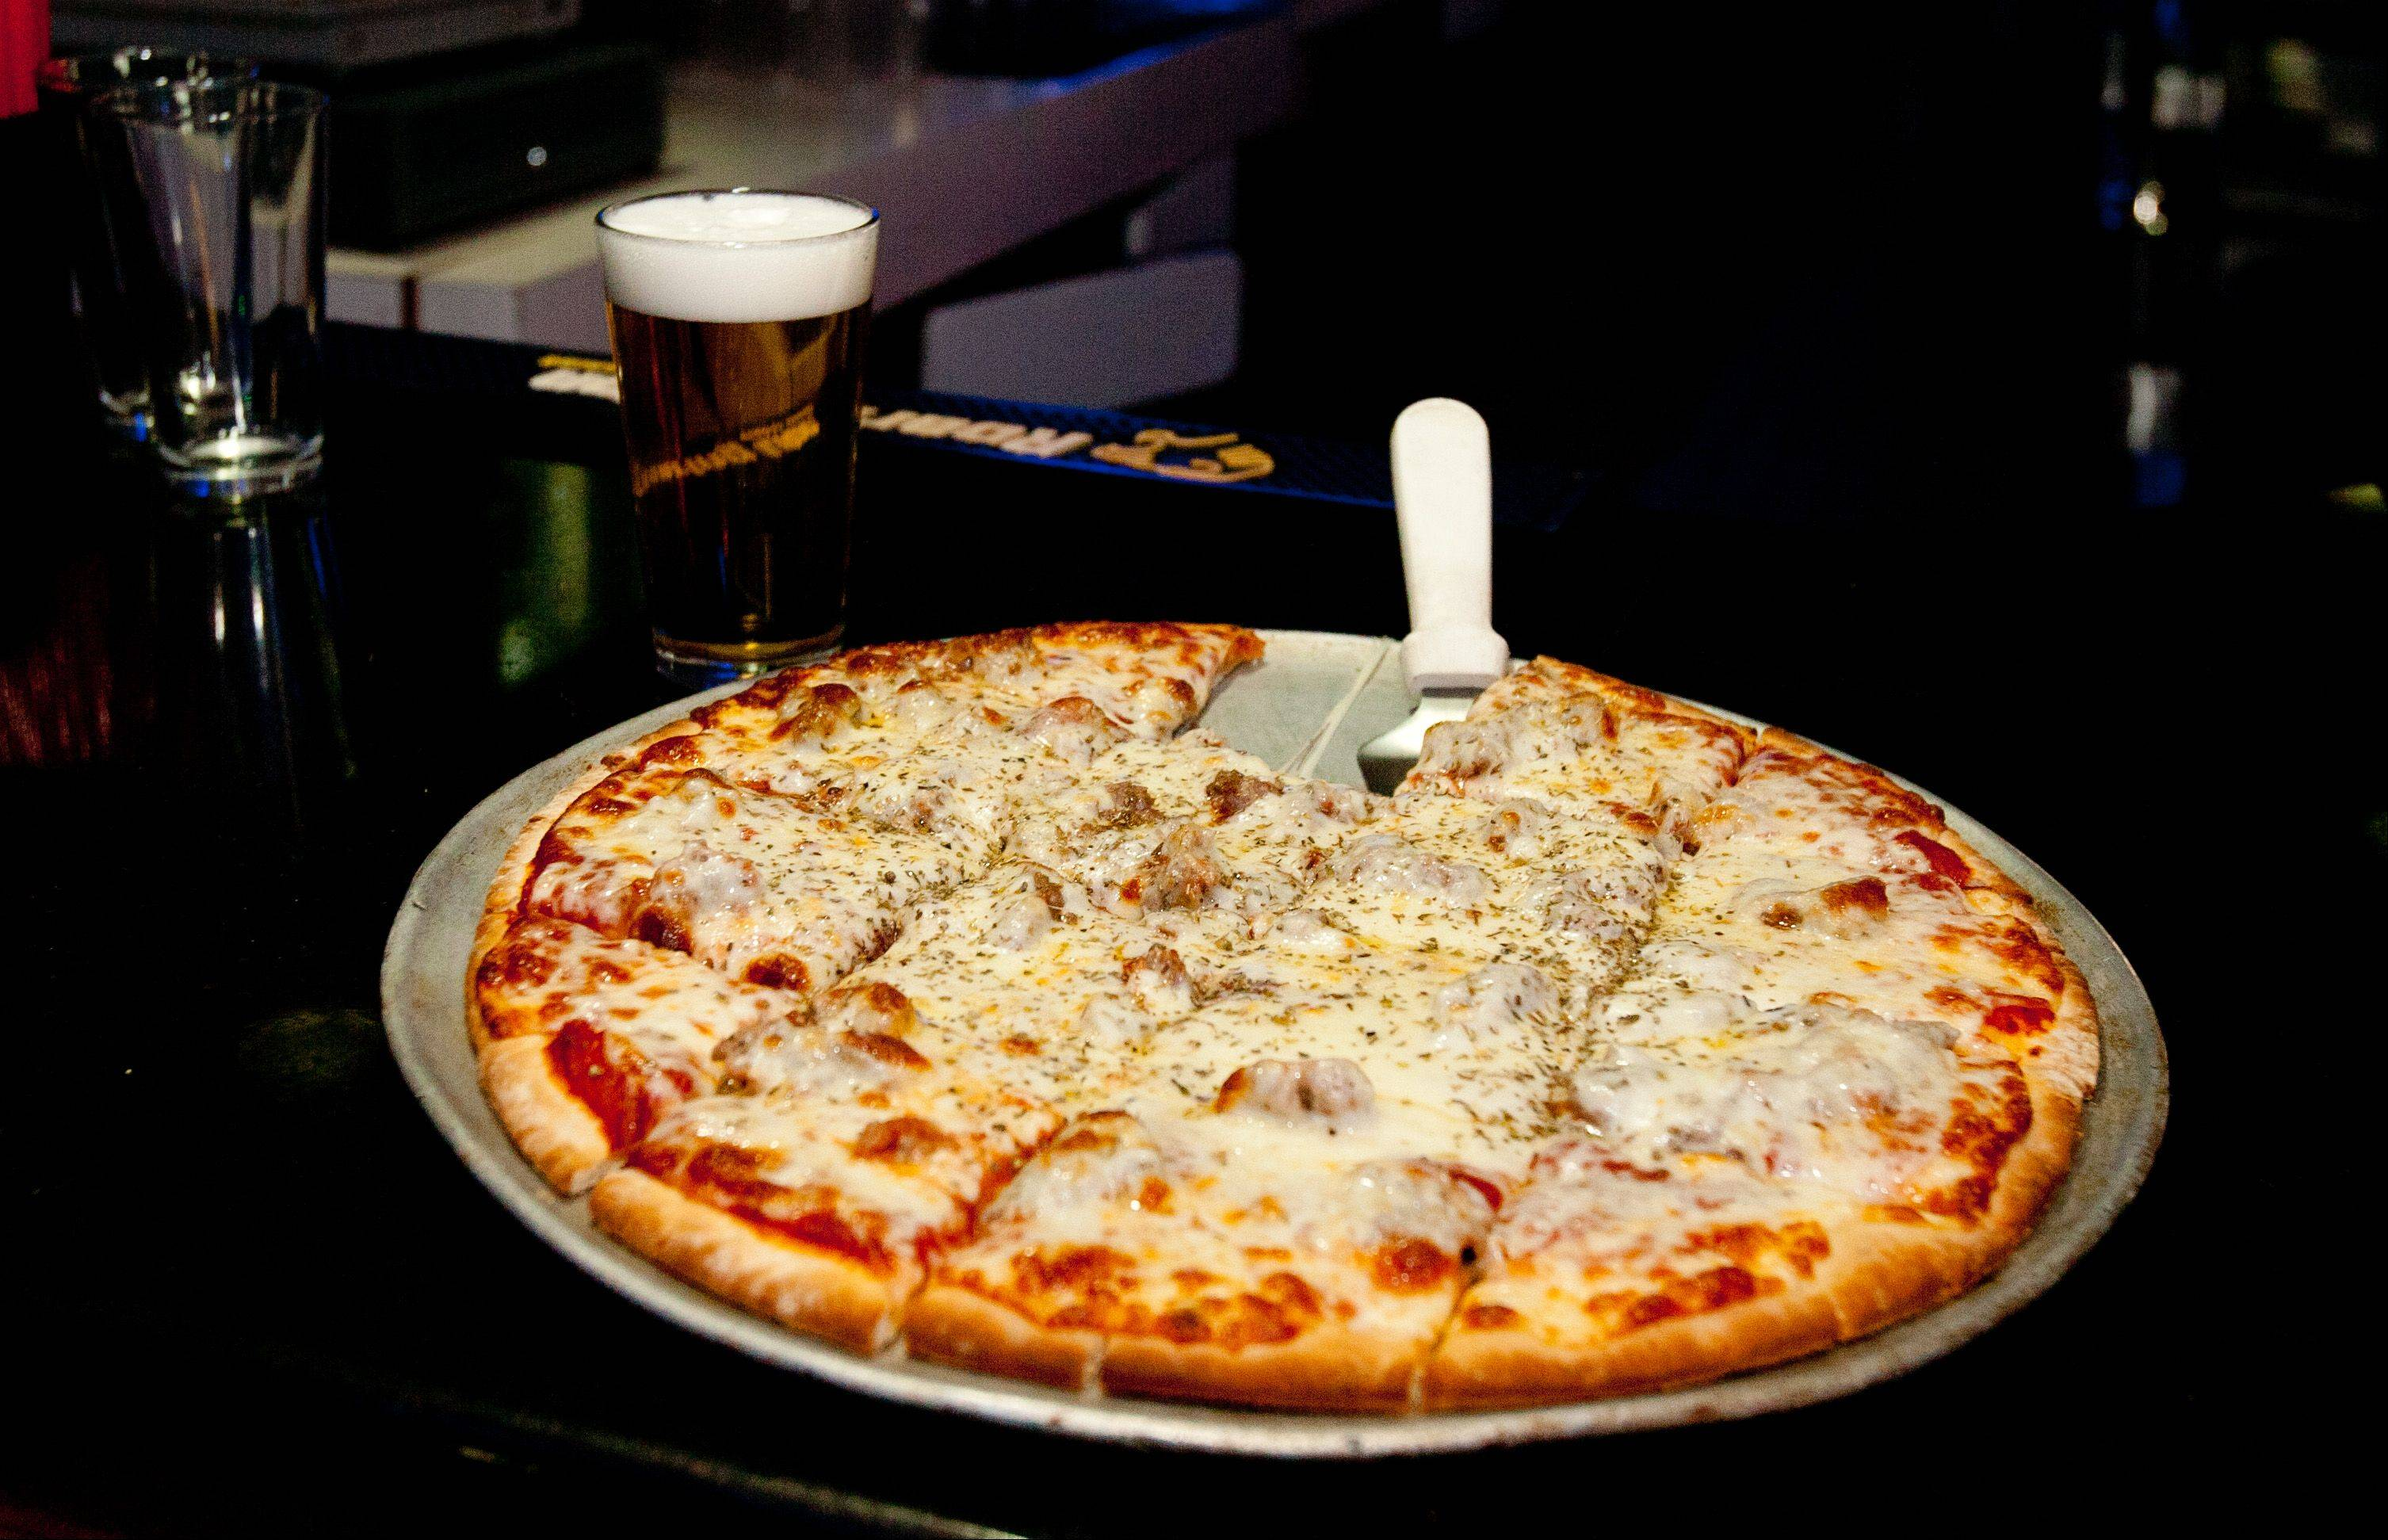 Pizza is one of the menu options at Club Shotz in Carol Stream.